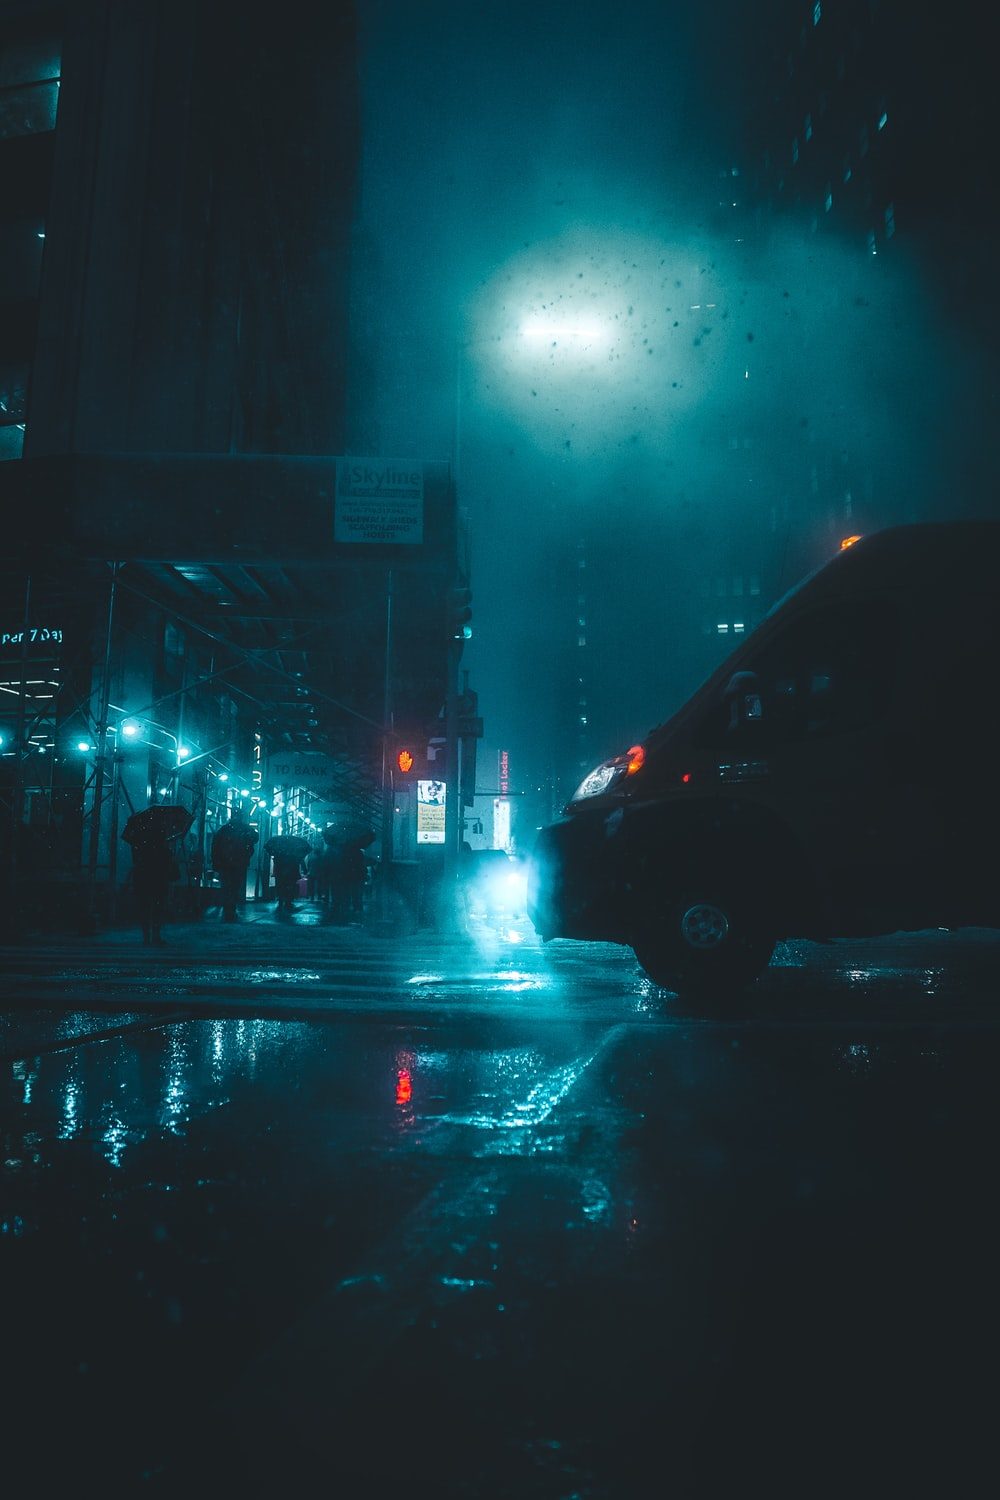 vehicle passing by wet road during nighttime